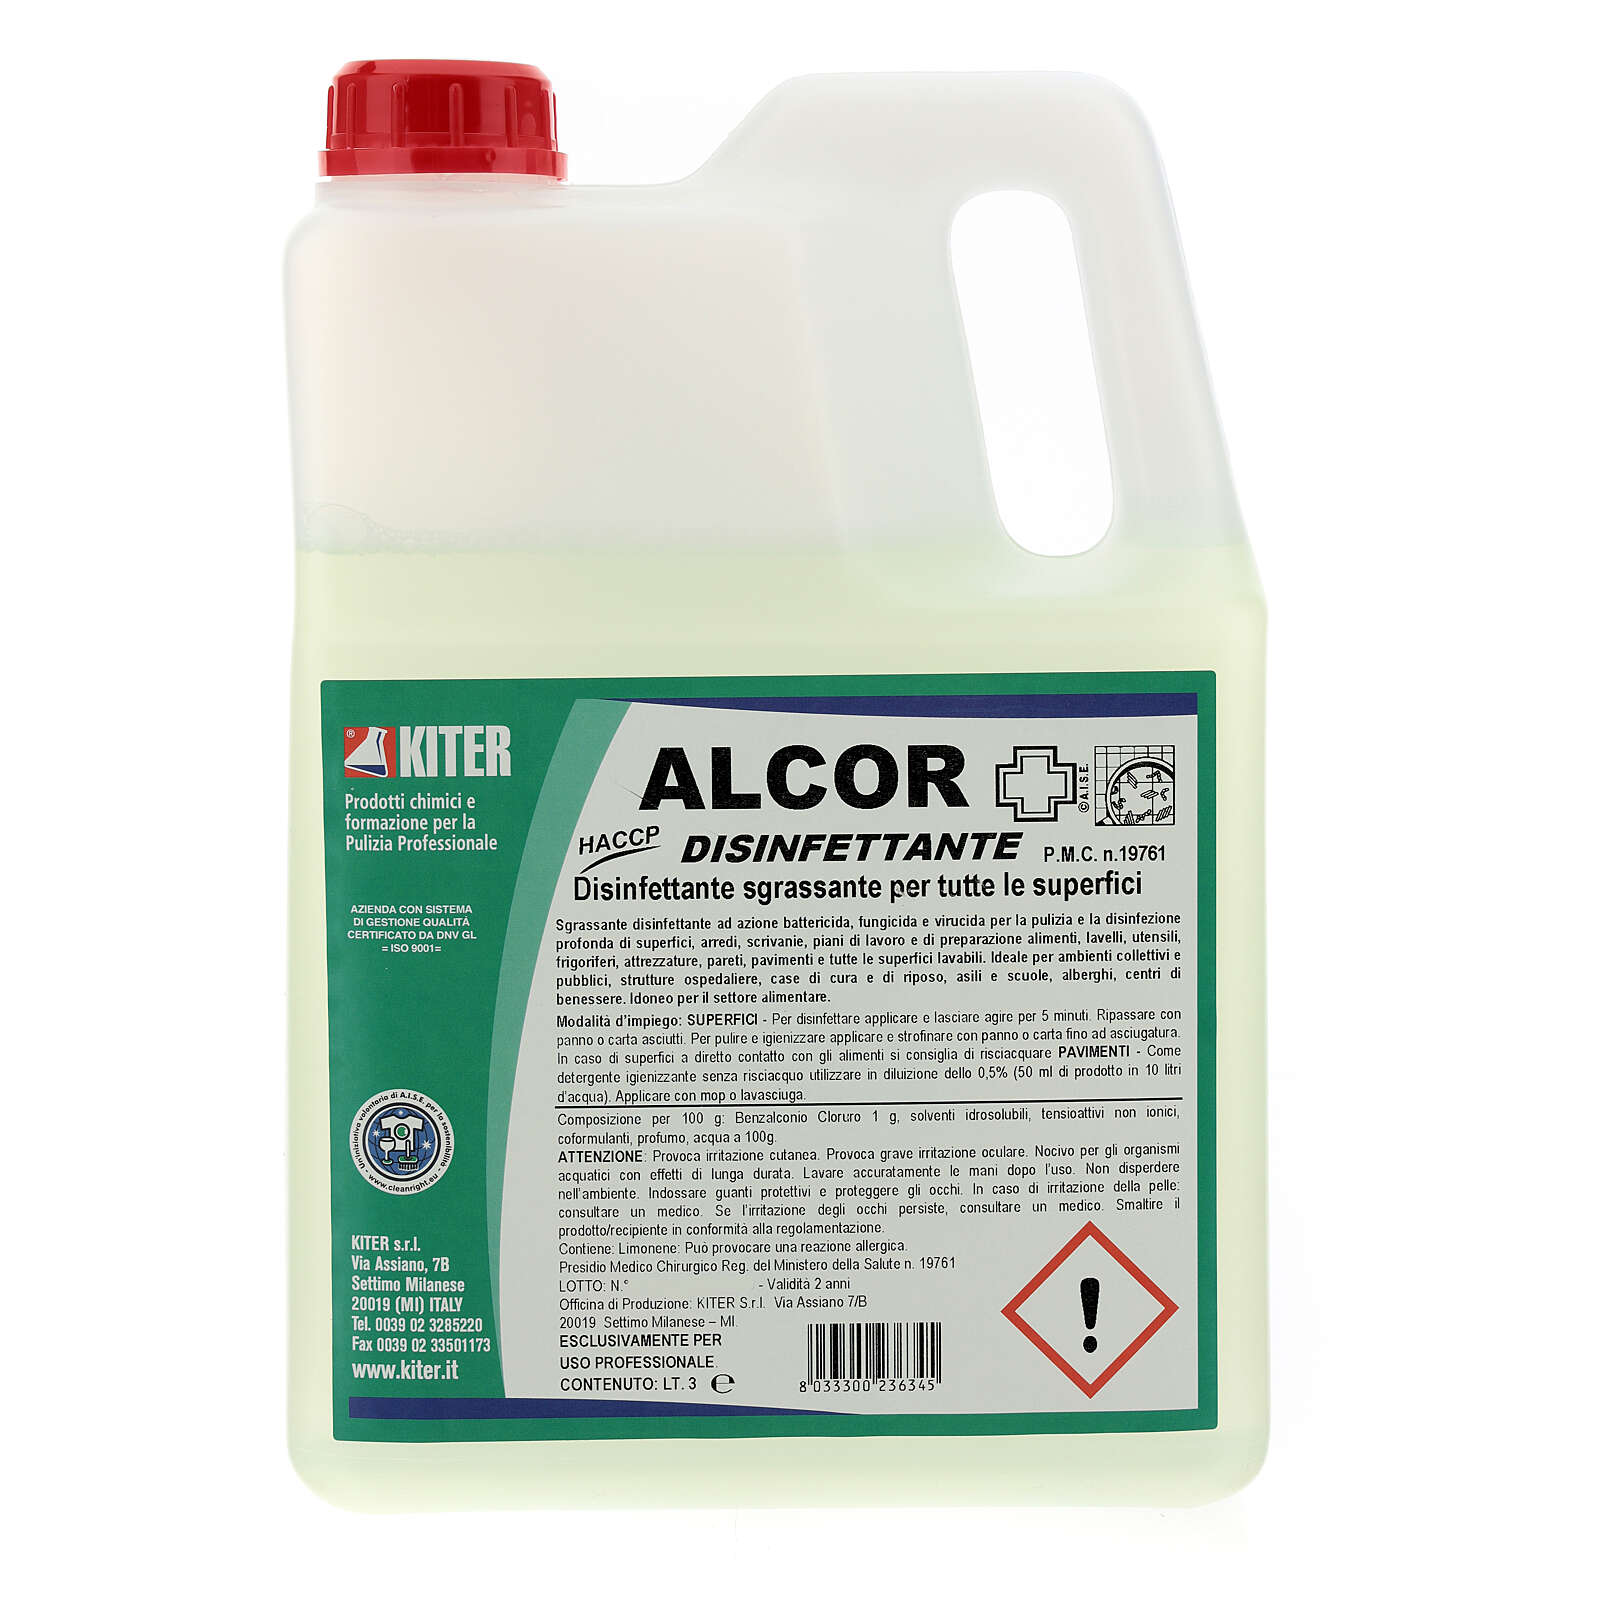 Alcor Disinfectant 3 liters, Refill 3